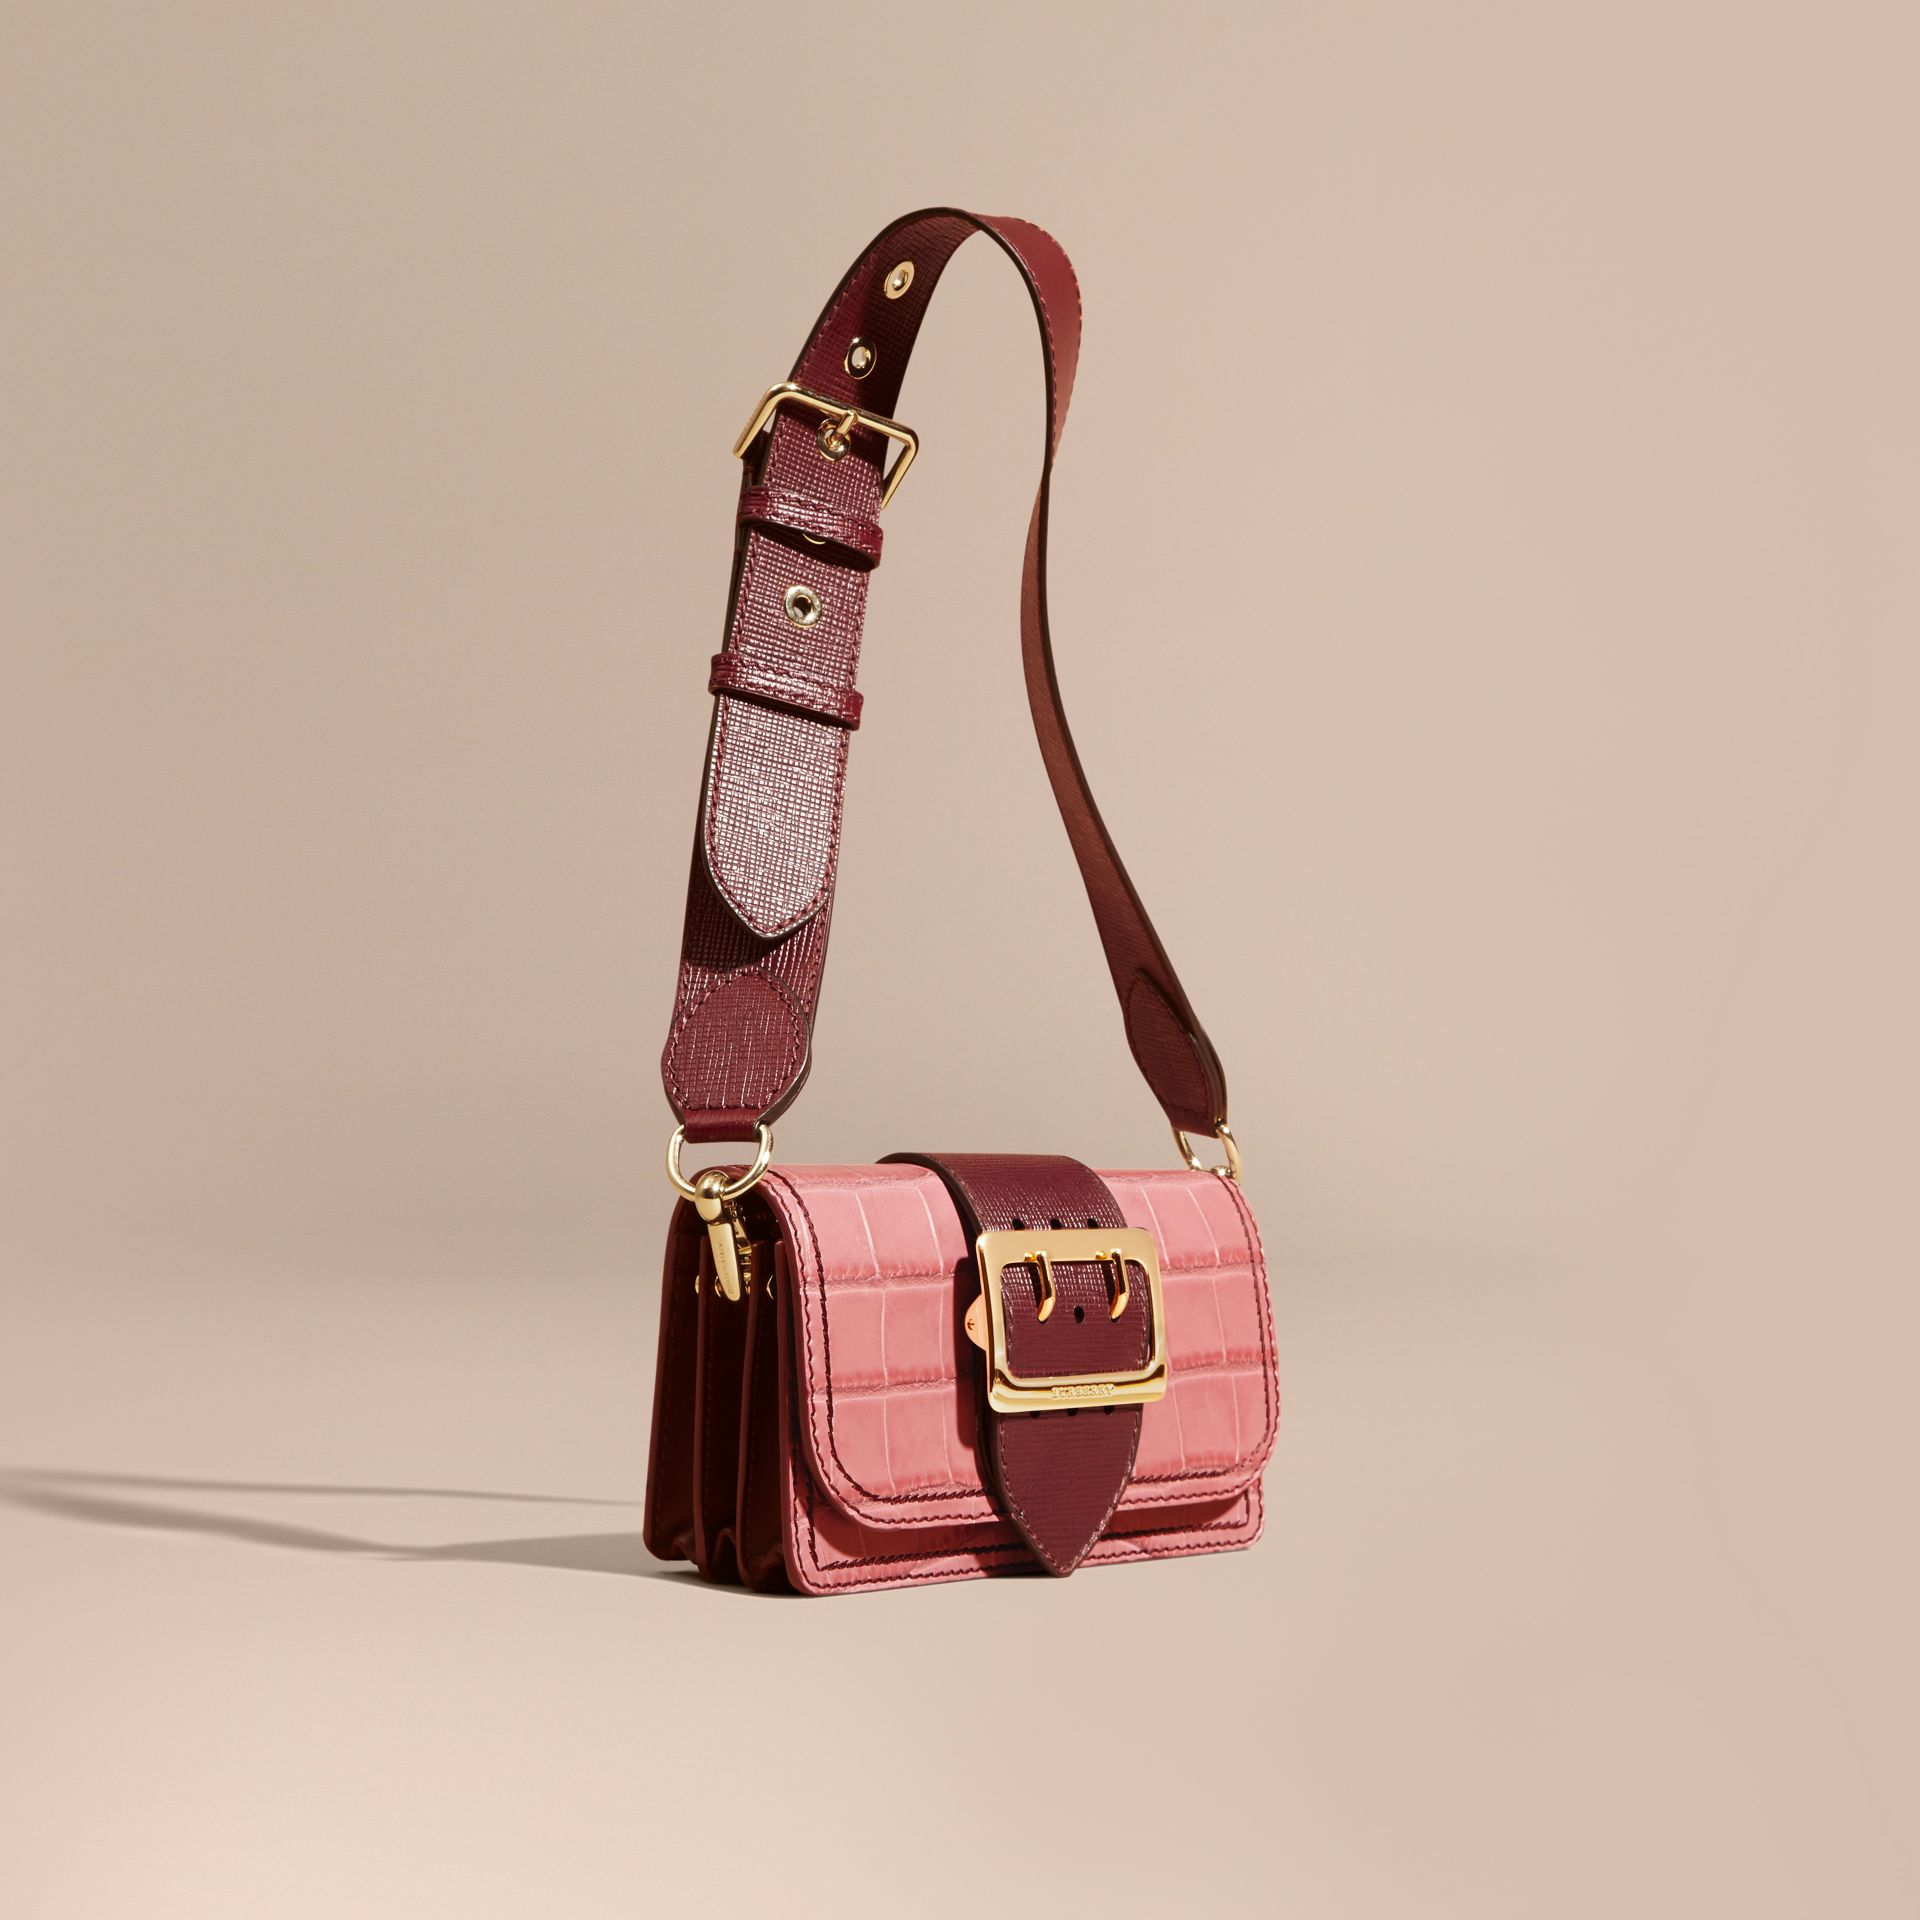 The Small Buckle Bag in Alligator and Leather in Dusky Pink/ Burgundy - Women | Burberry Australia - gallery image 1